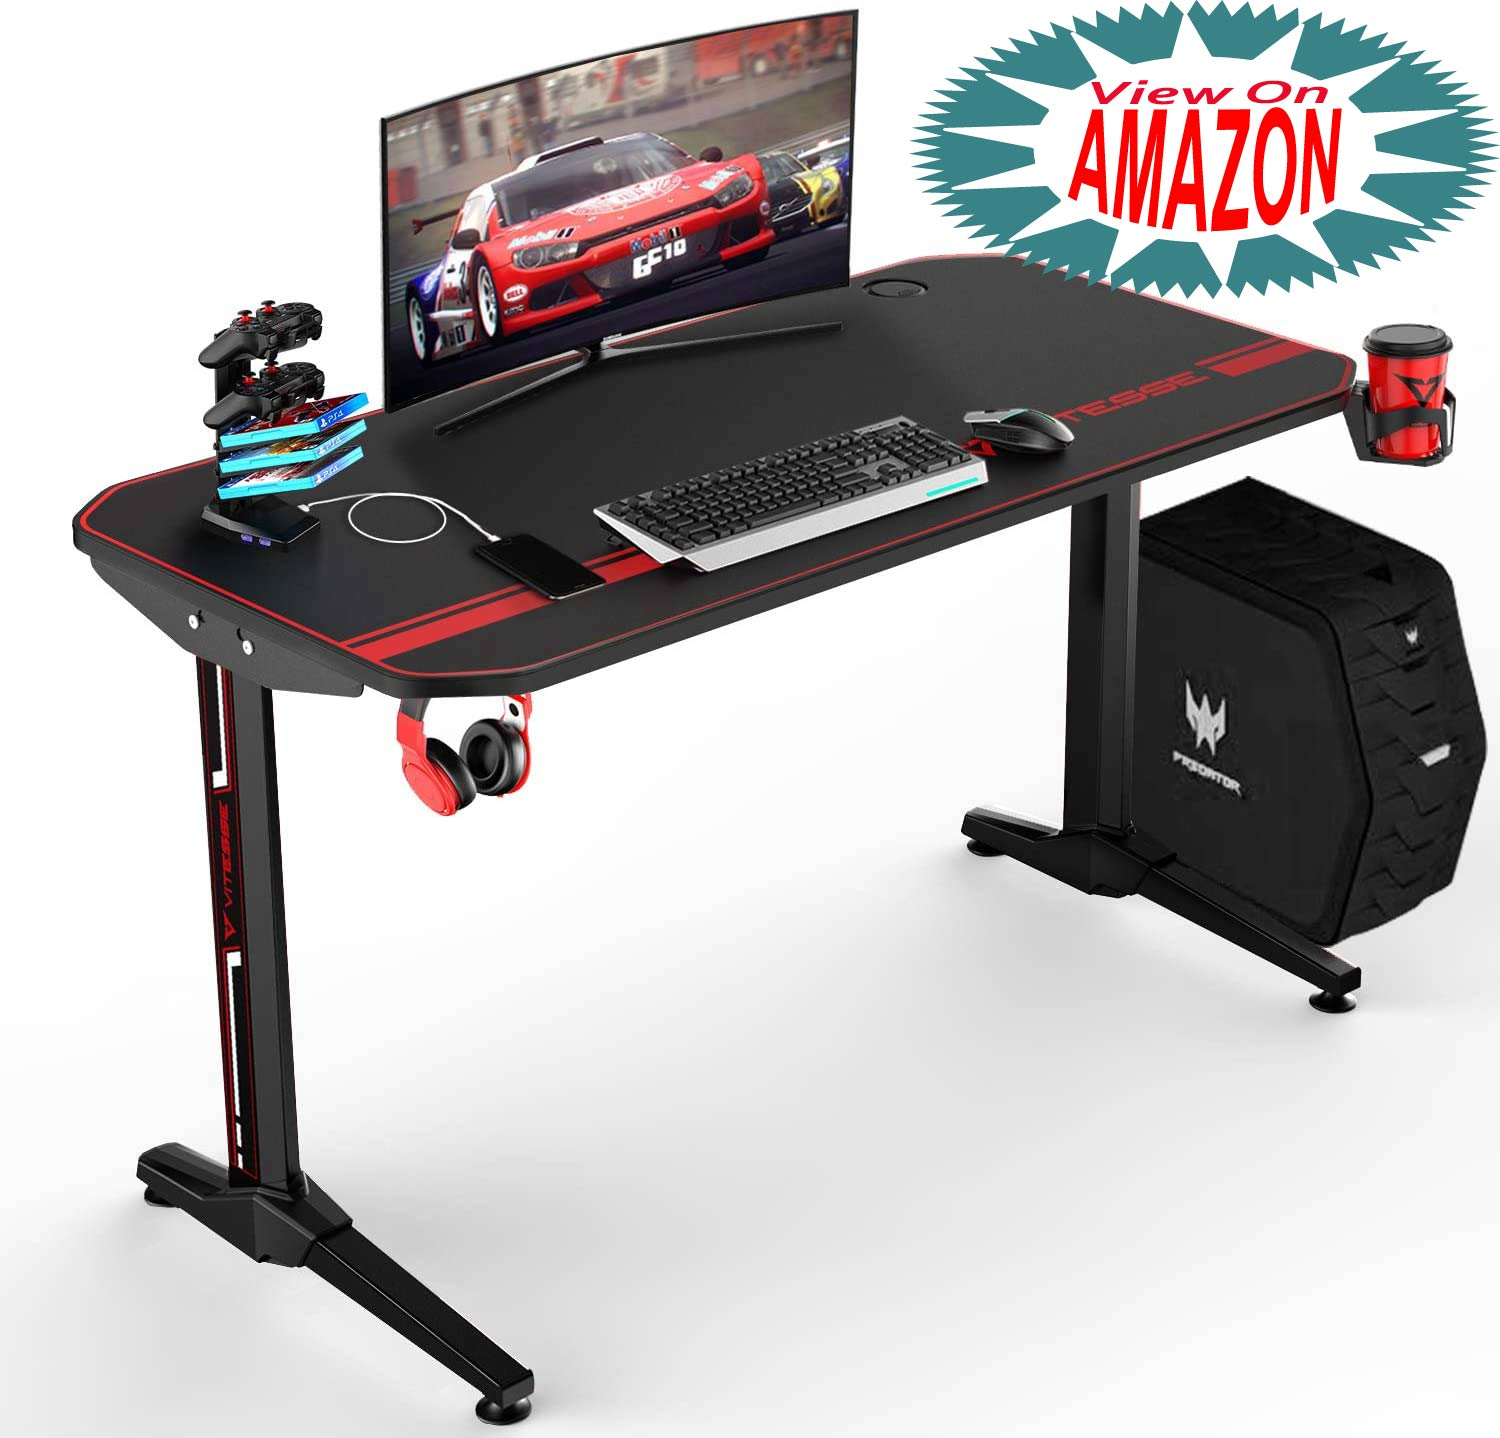 12 Best Gaming Desk for boys and girls to enjoy playing game